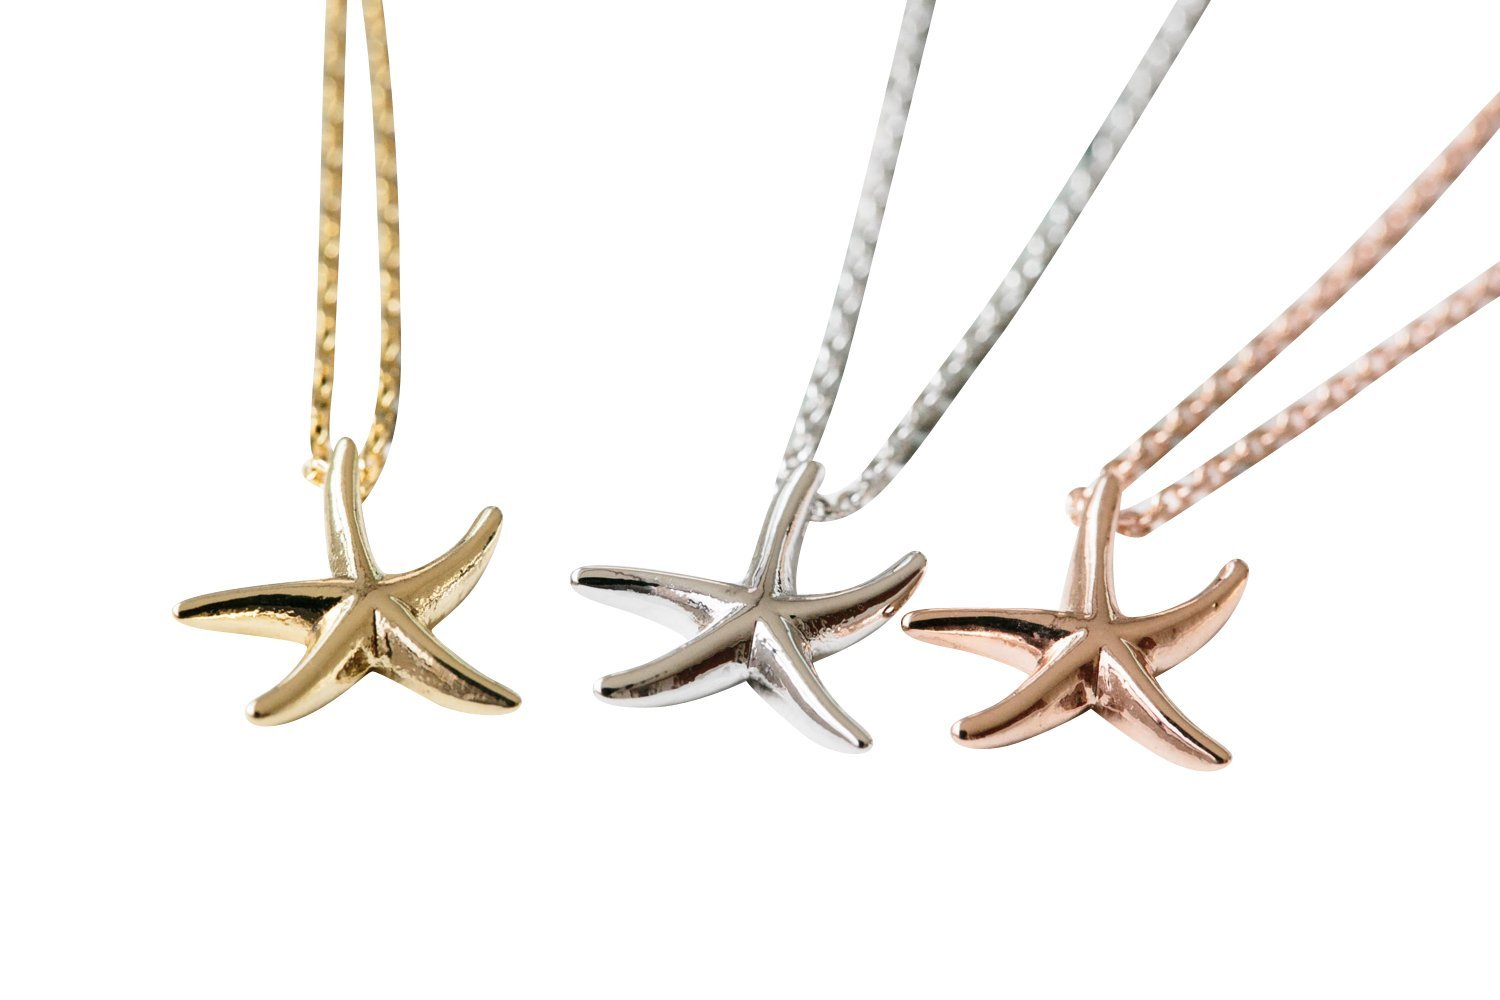 Cheap swarovski starfish necklace find swarovski starfish necklace get quotations starfish necklace it starfish necklace starfish jewelry starfish shape necklace starfish aloadofball Gallery